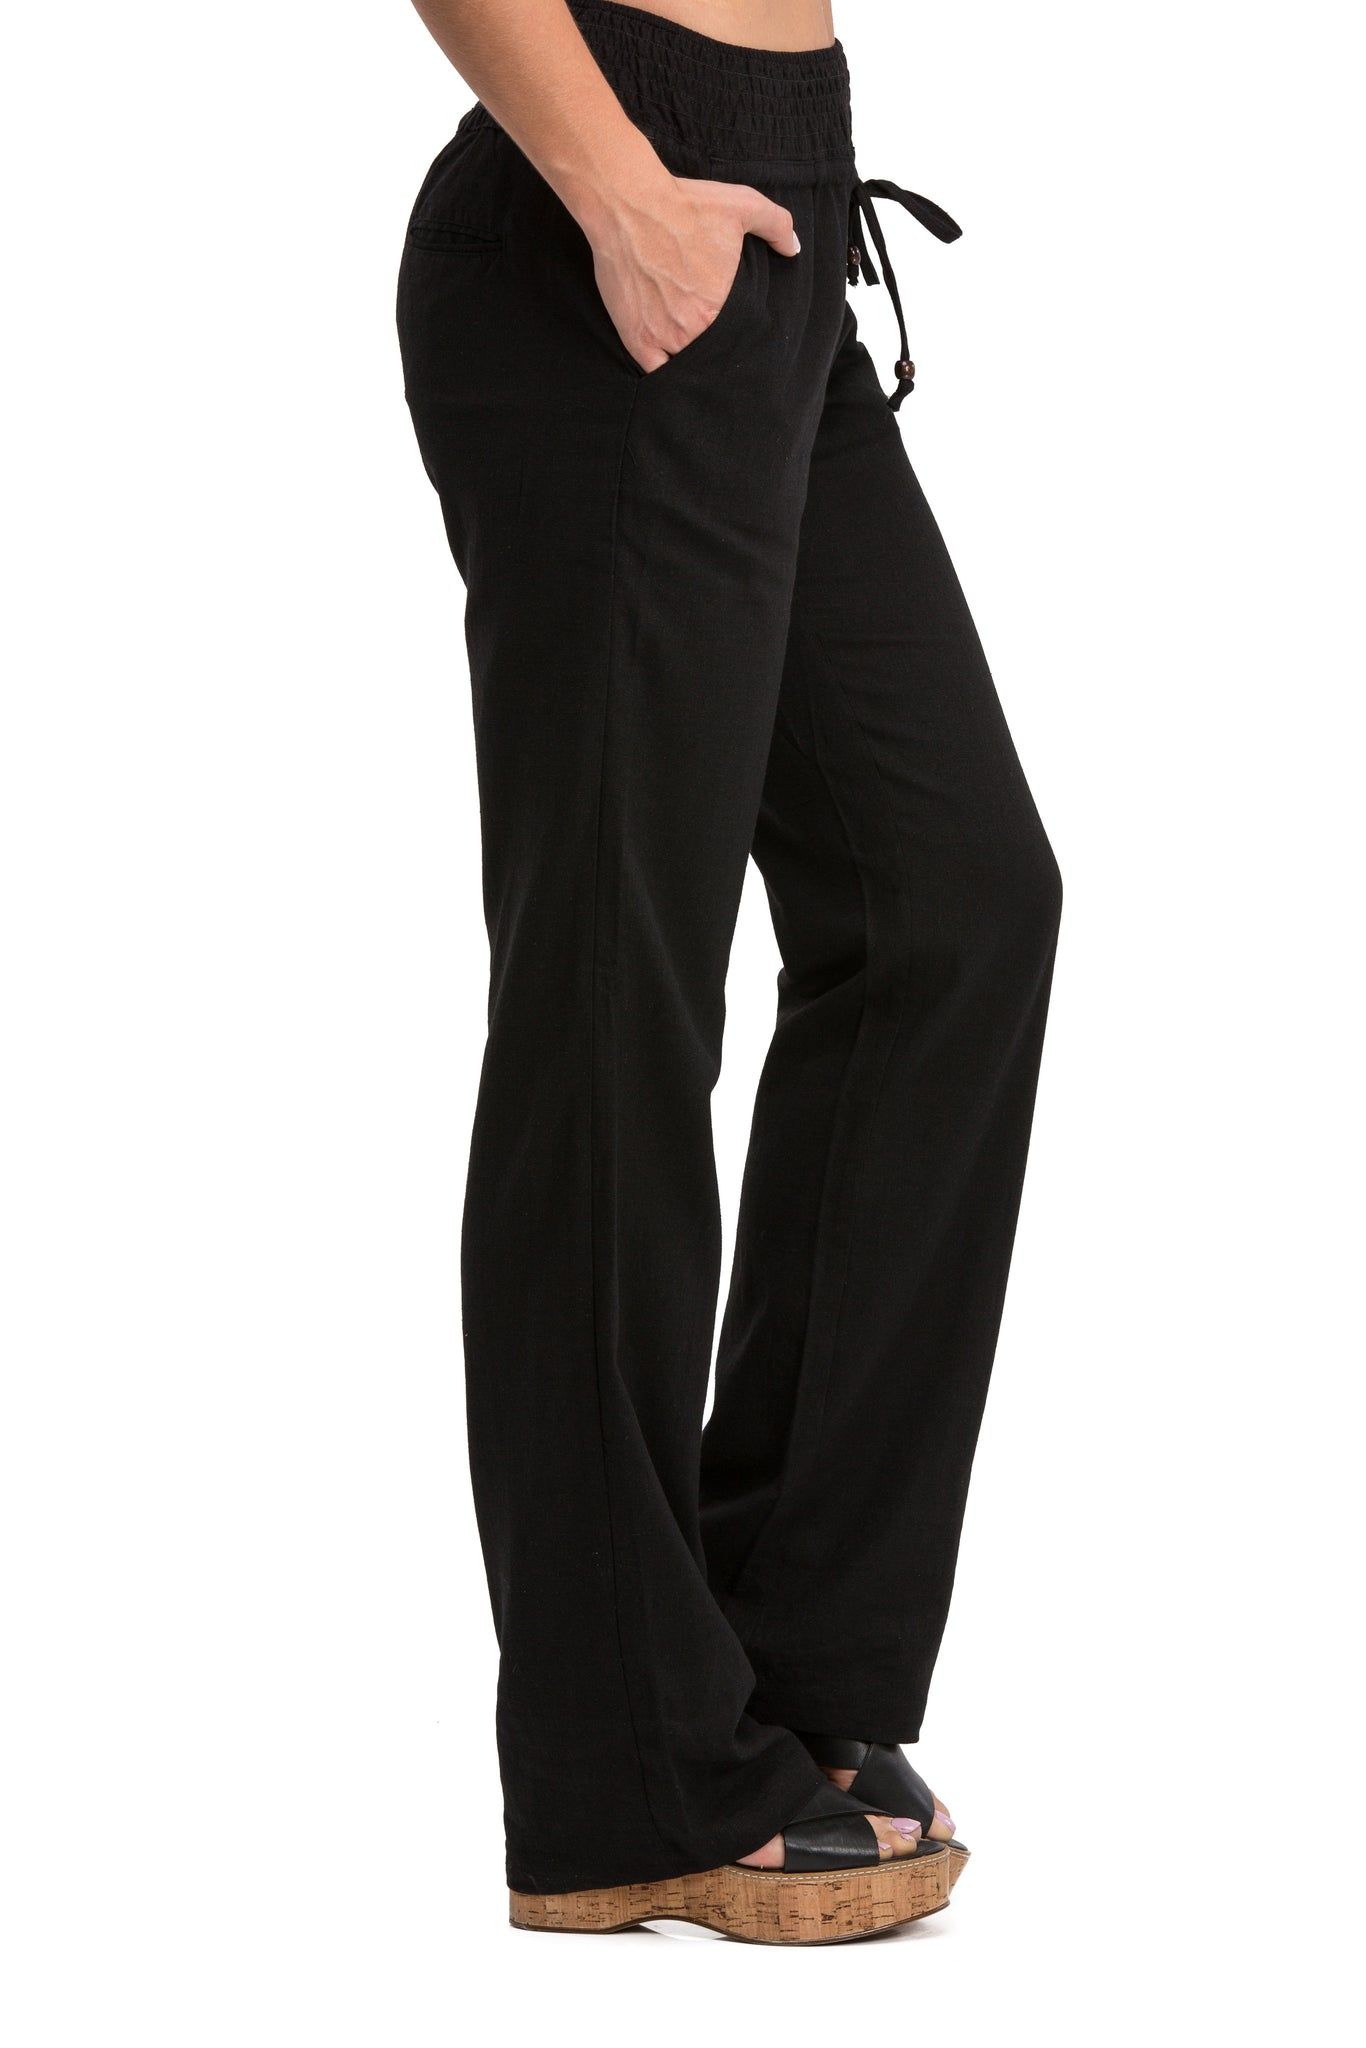 Comfy Drawstring Linen Pants Long with Smocked Band Waist (Black)